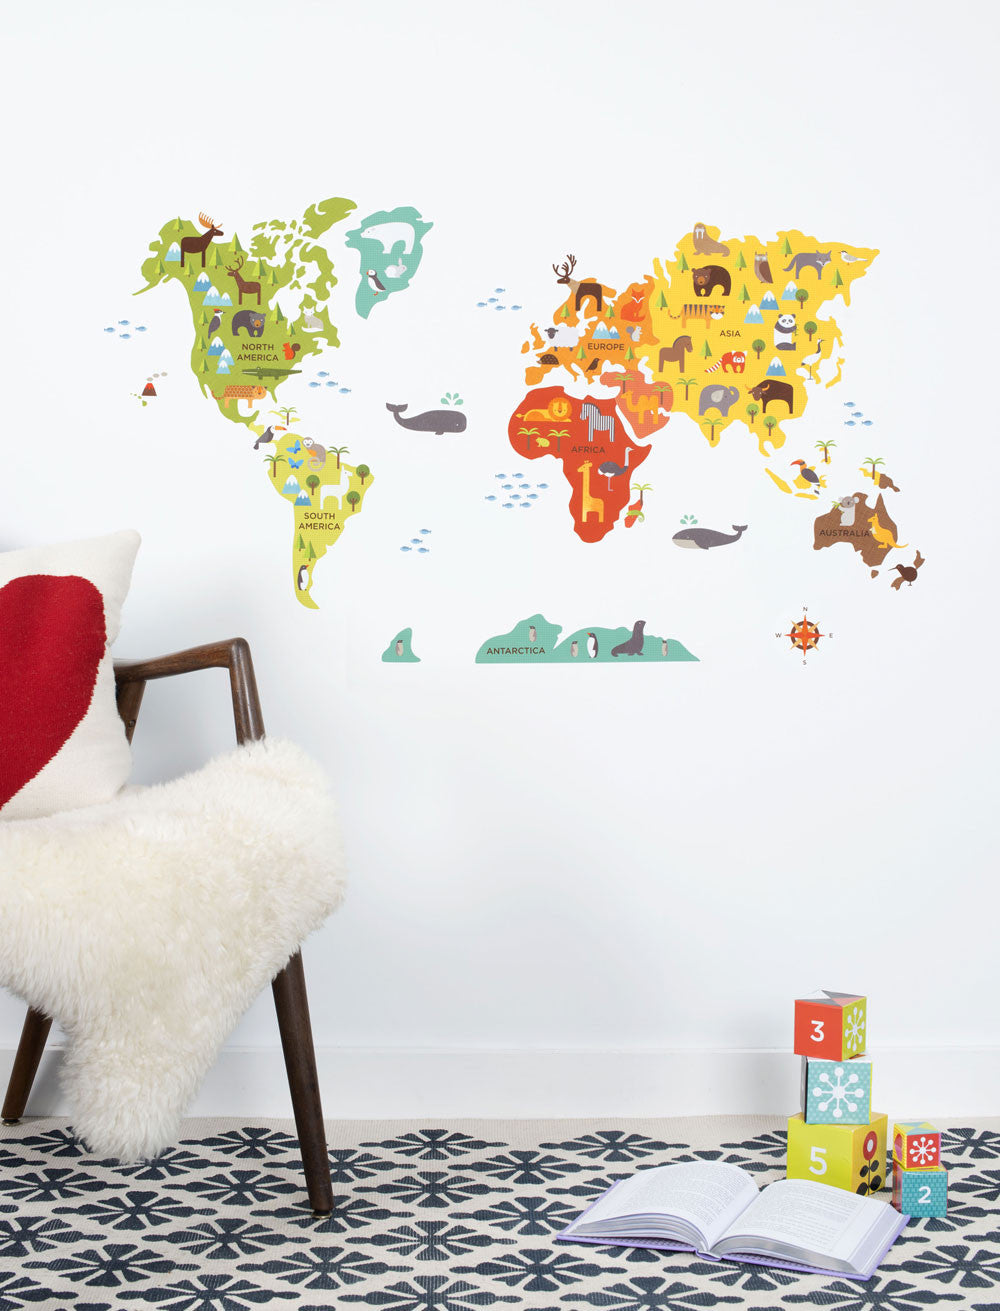 World map wall decal walldecals world map wall decal gumiabroncs Image collections